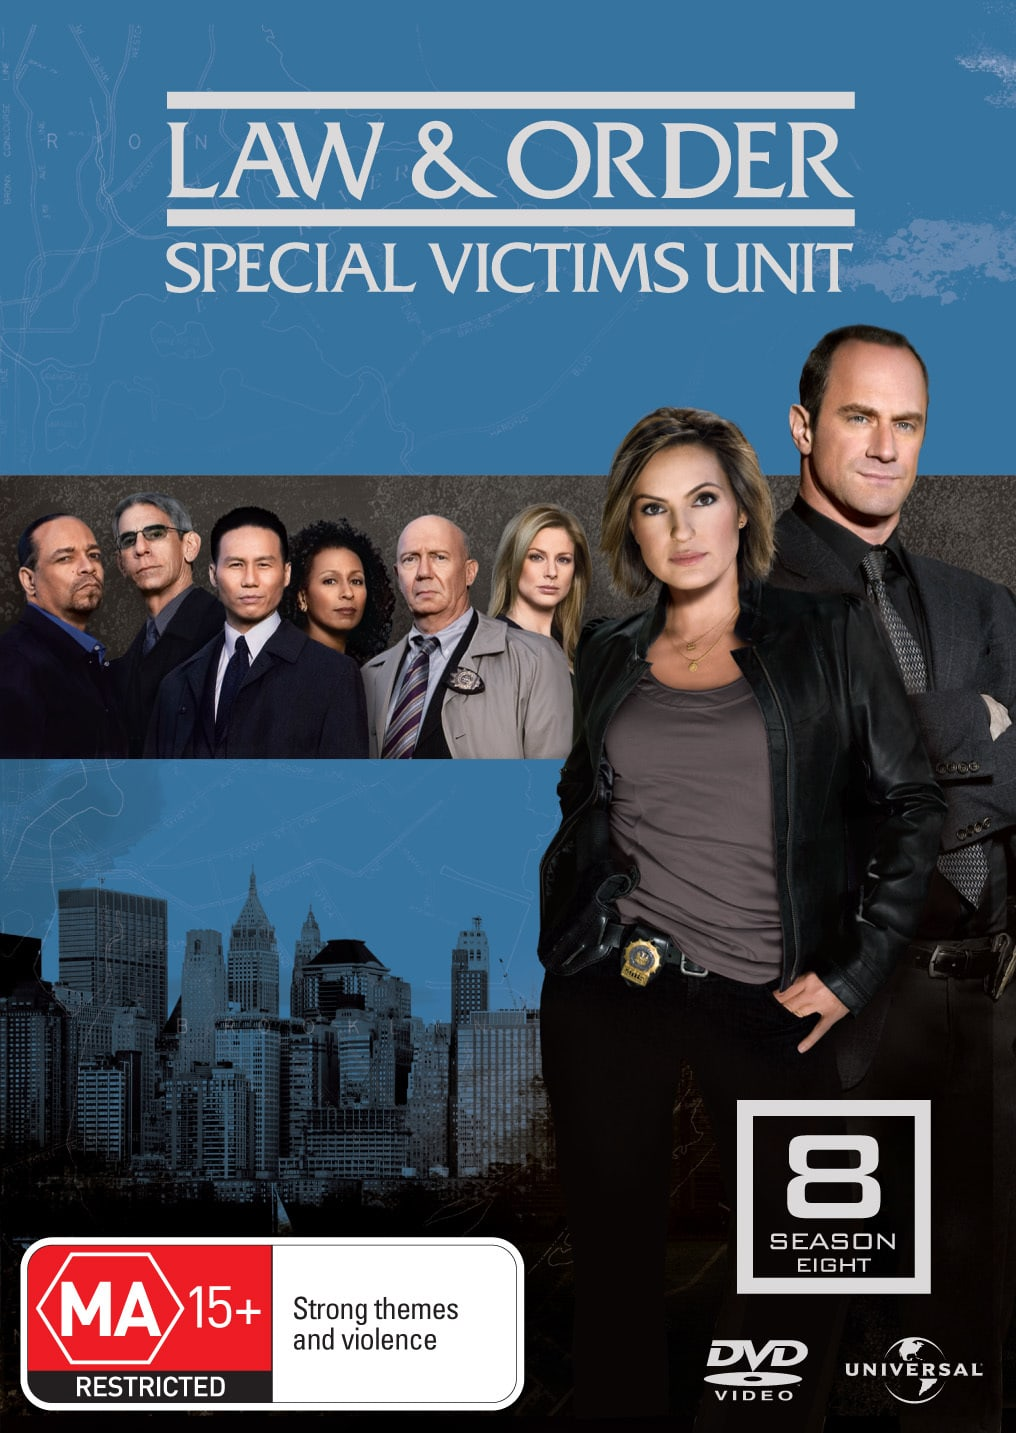 Law and Order - Special Victims Unit: Season 8 [DVD]